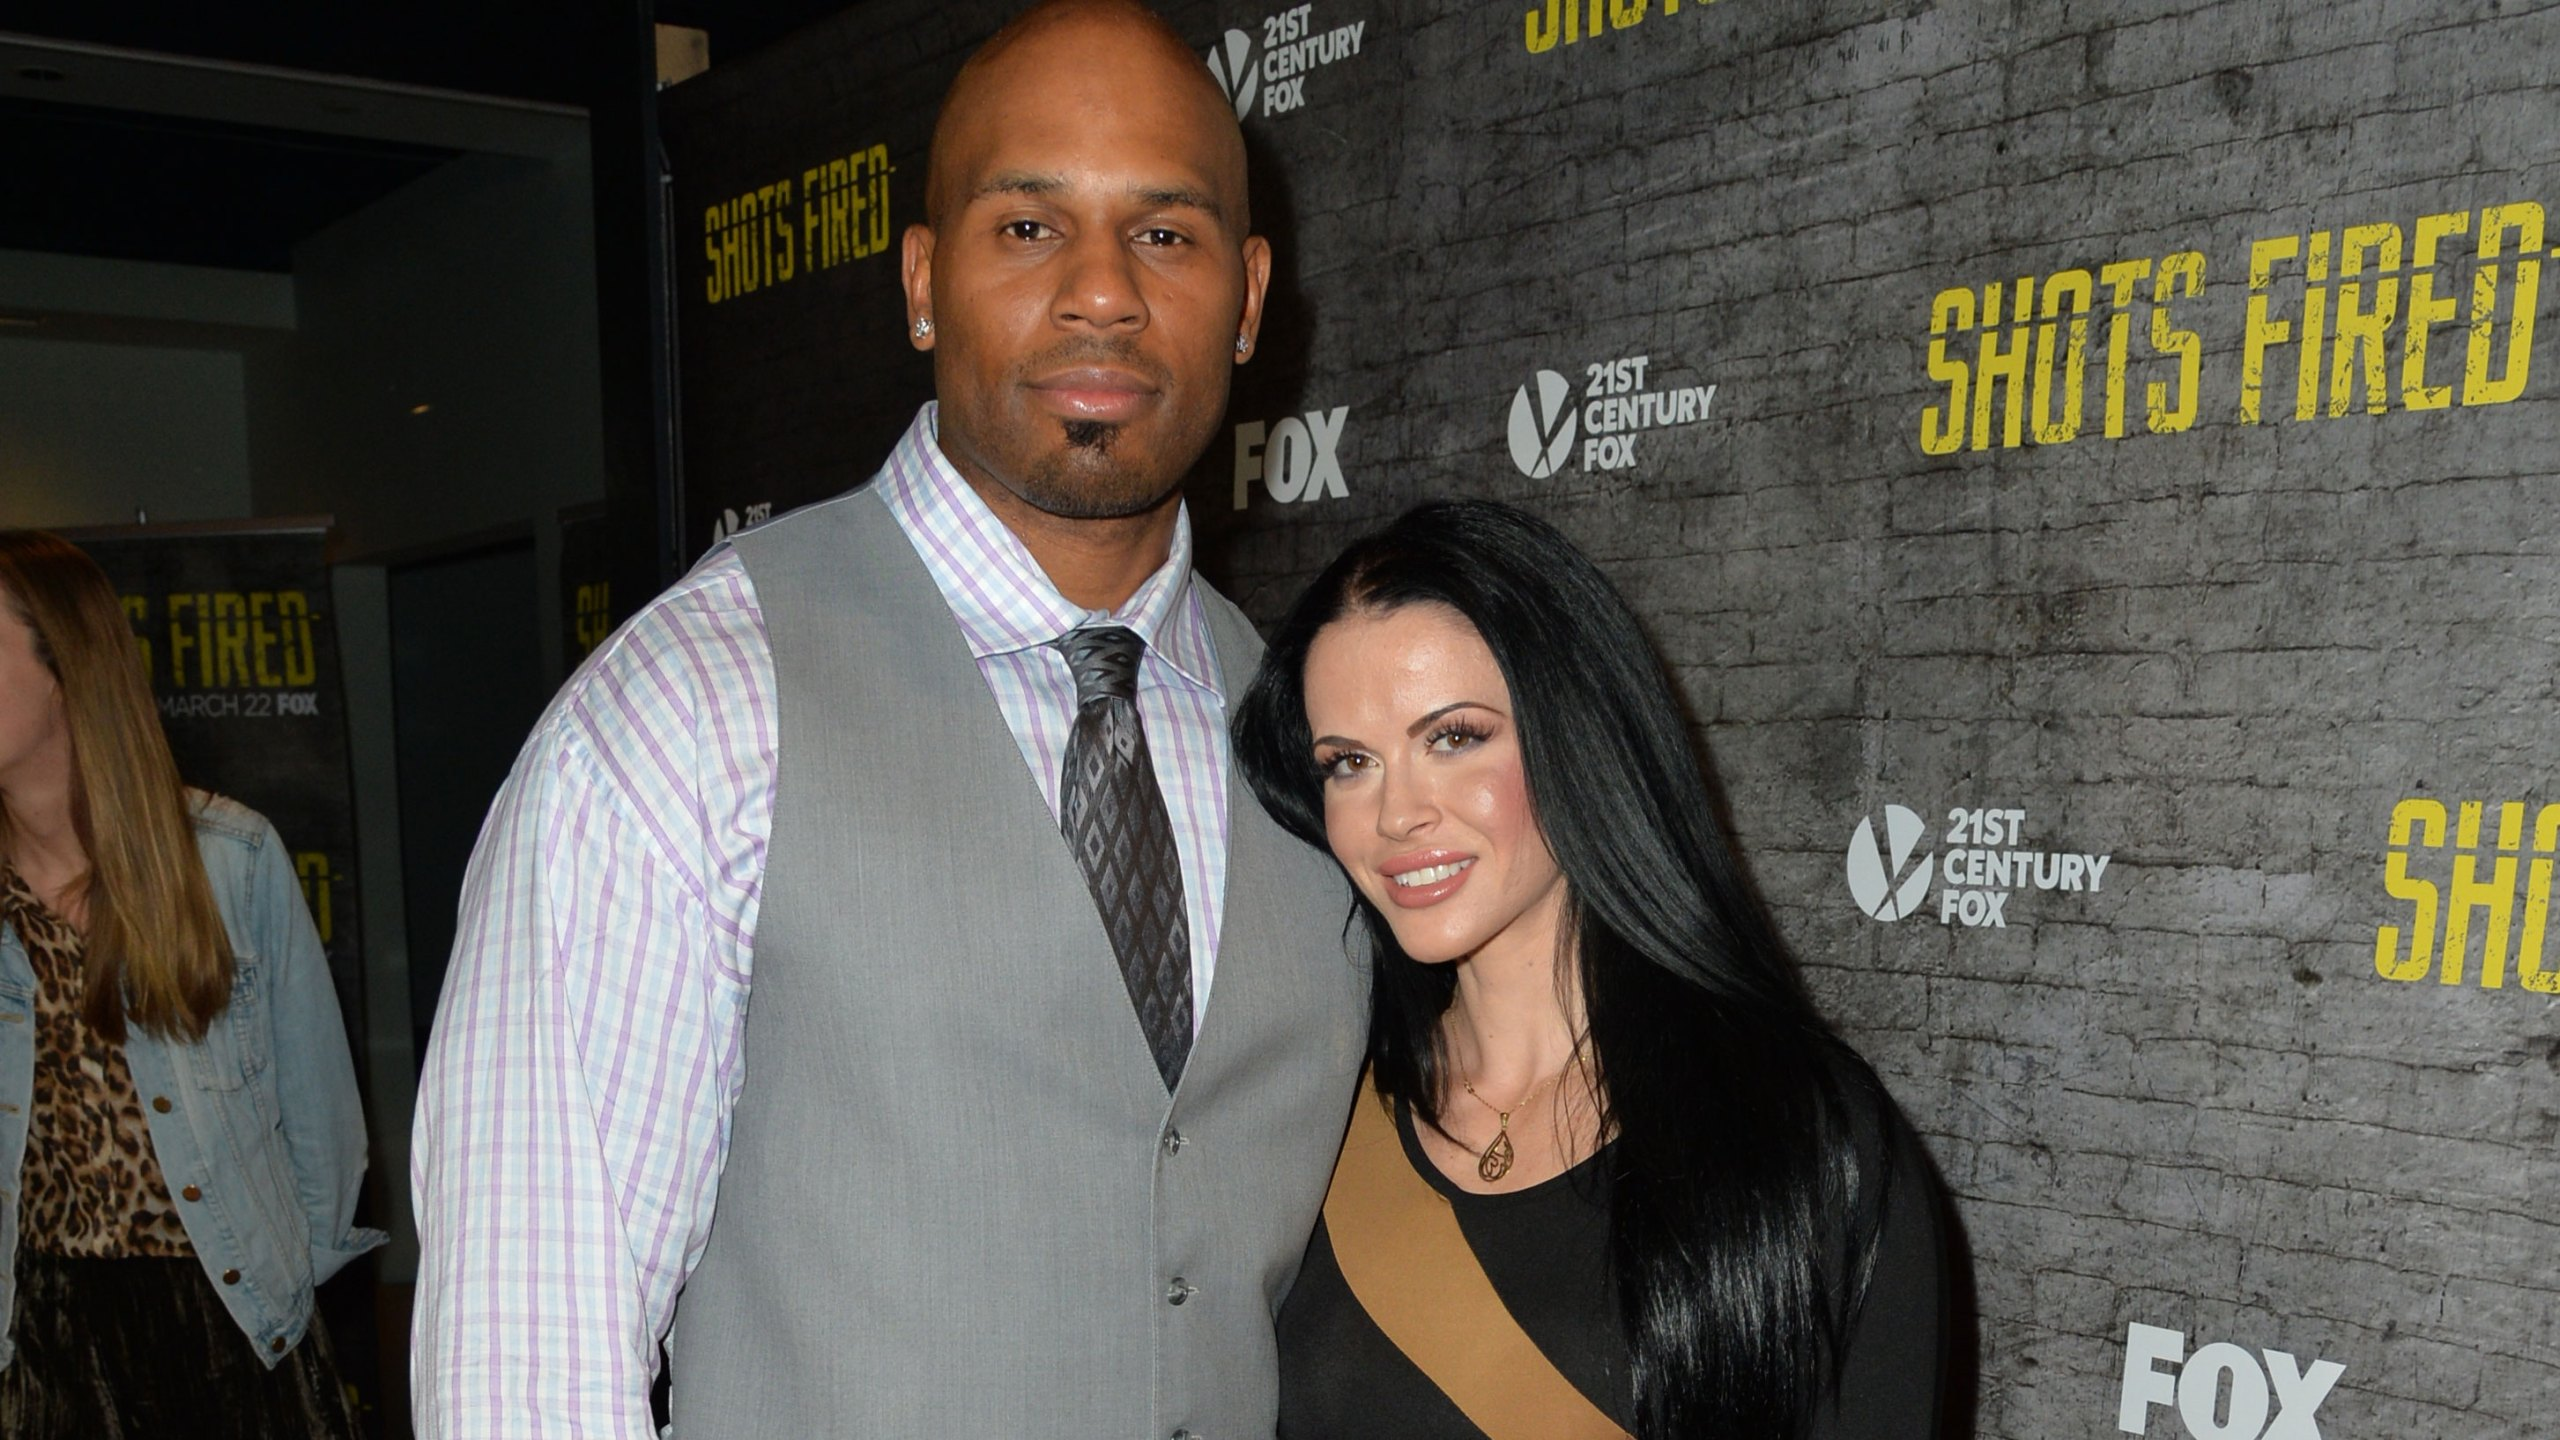 Shad Gaspards wife breaks silence the WWE stars body is found 2560x1440